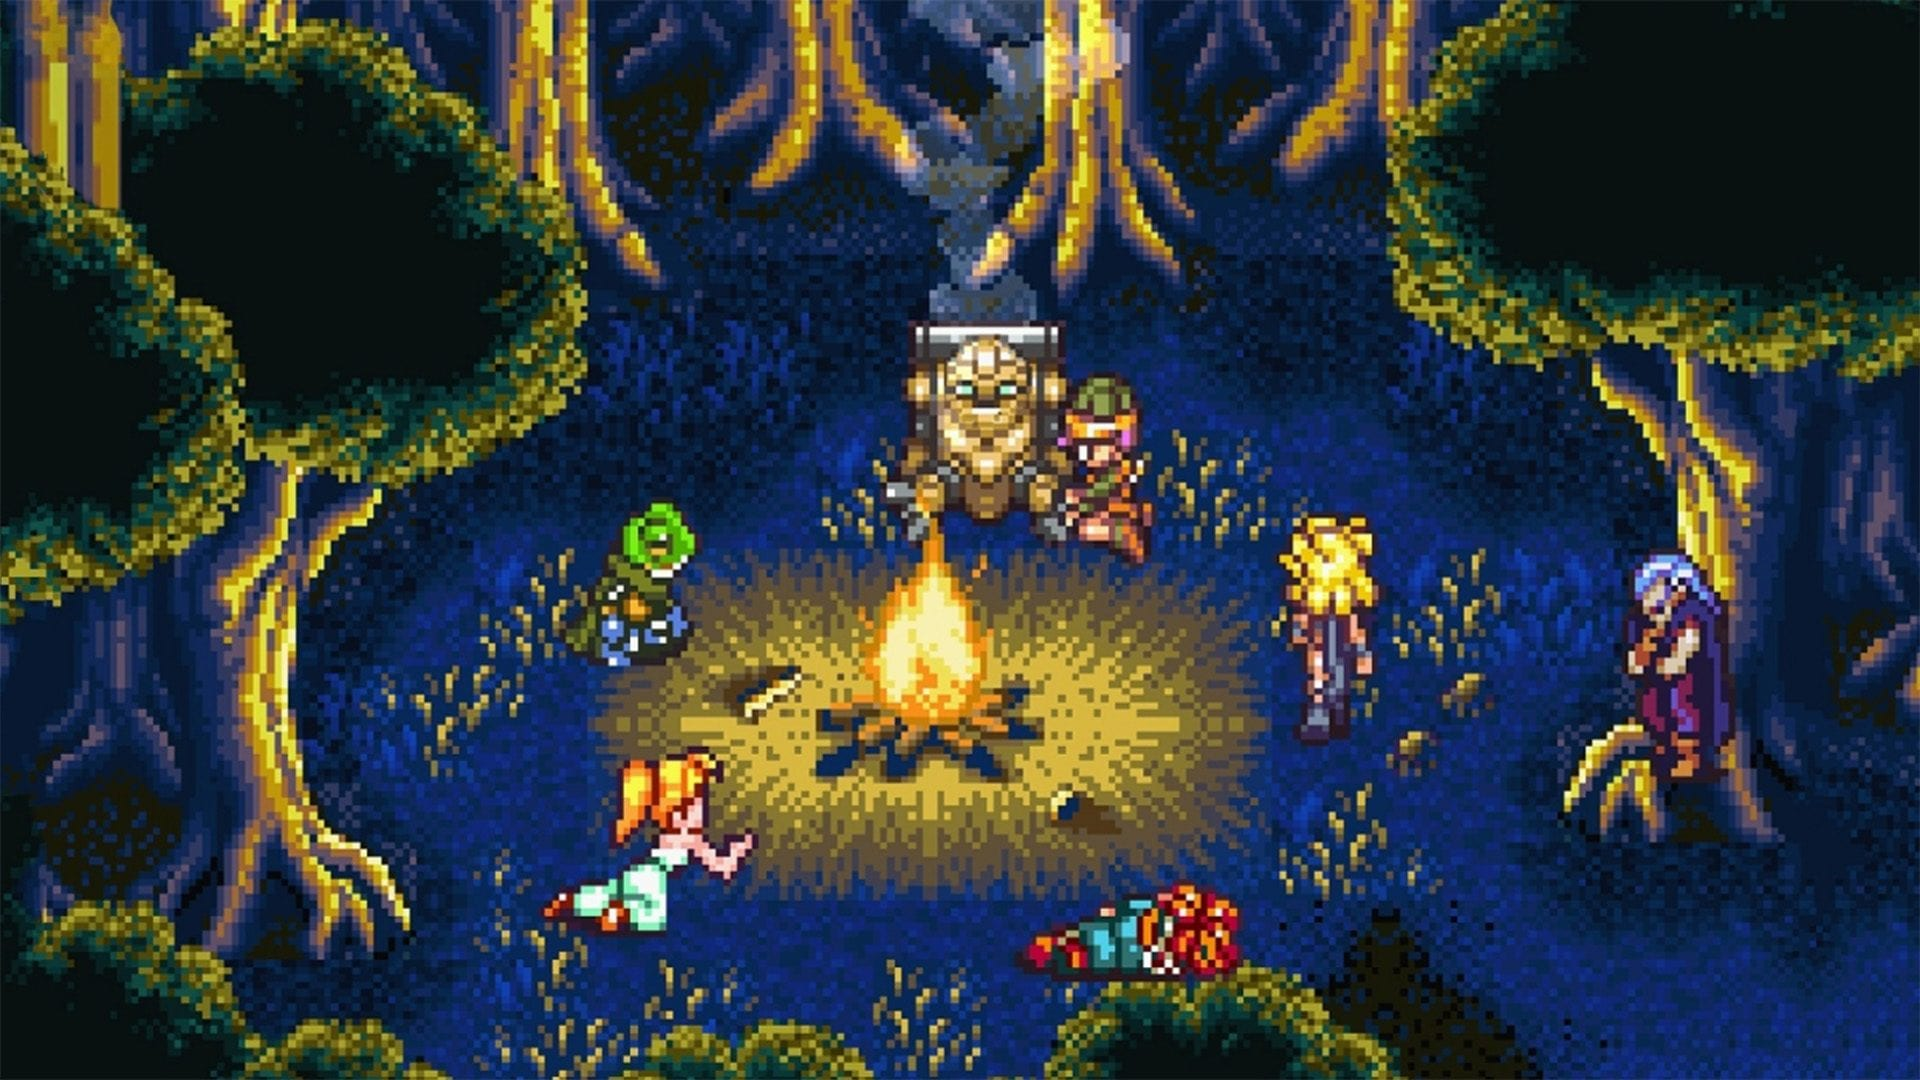 16 bit, old school, pixel, graphics, beautiful, prettiest, best, looking, snes